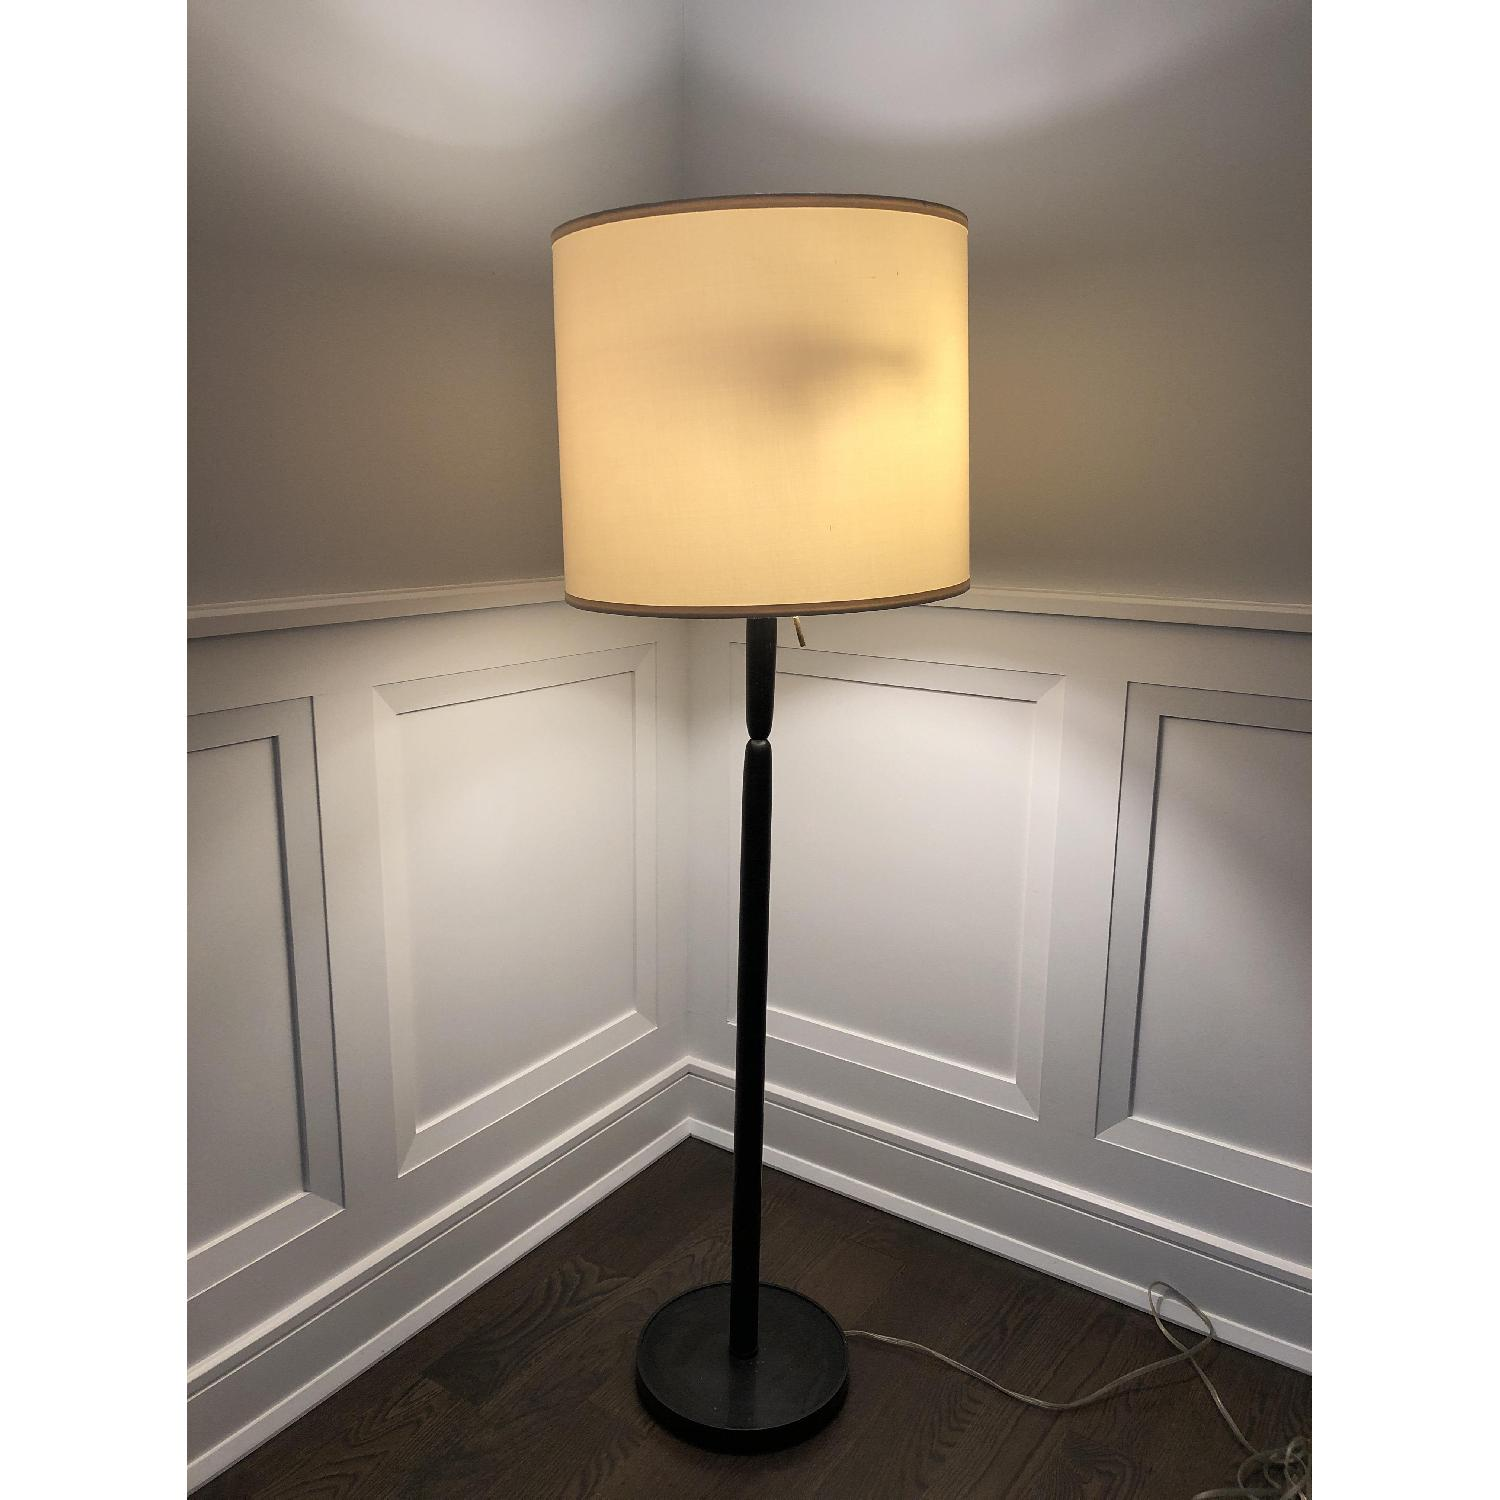 Black Floor Lamp w/ Off White Shade